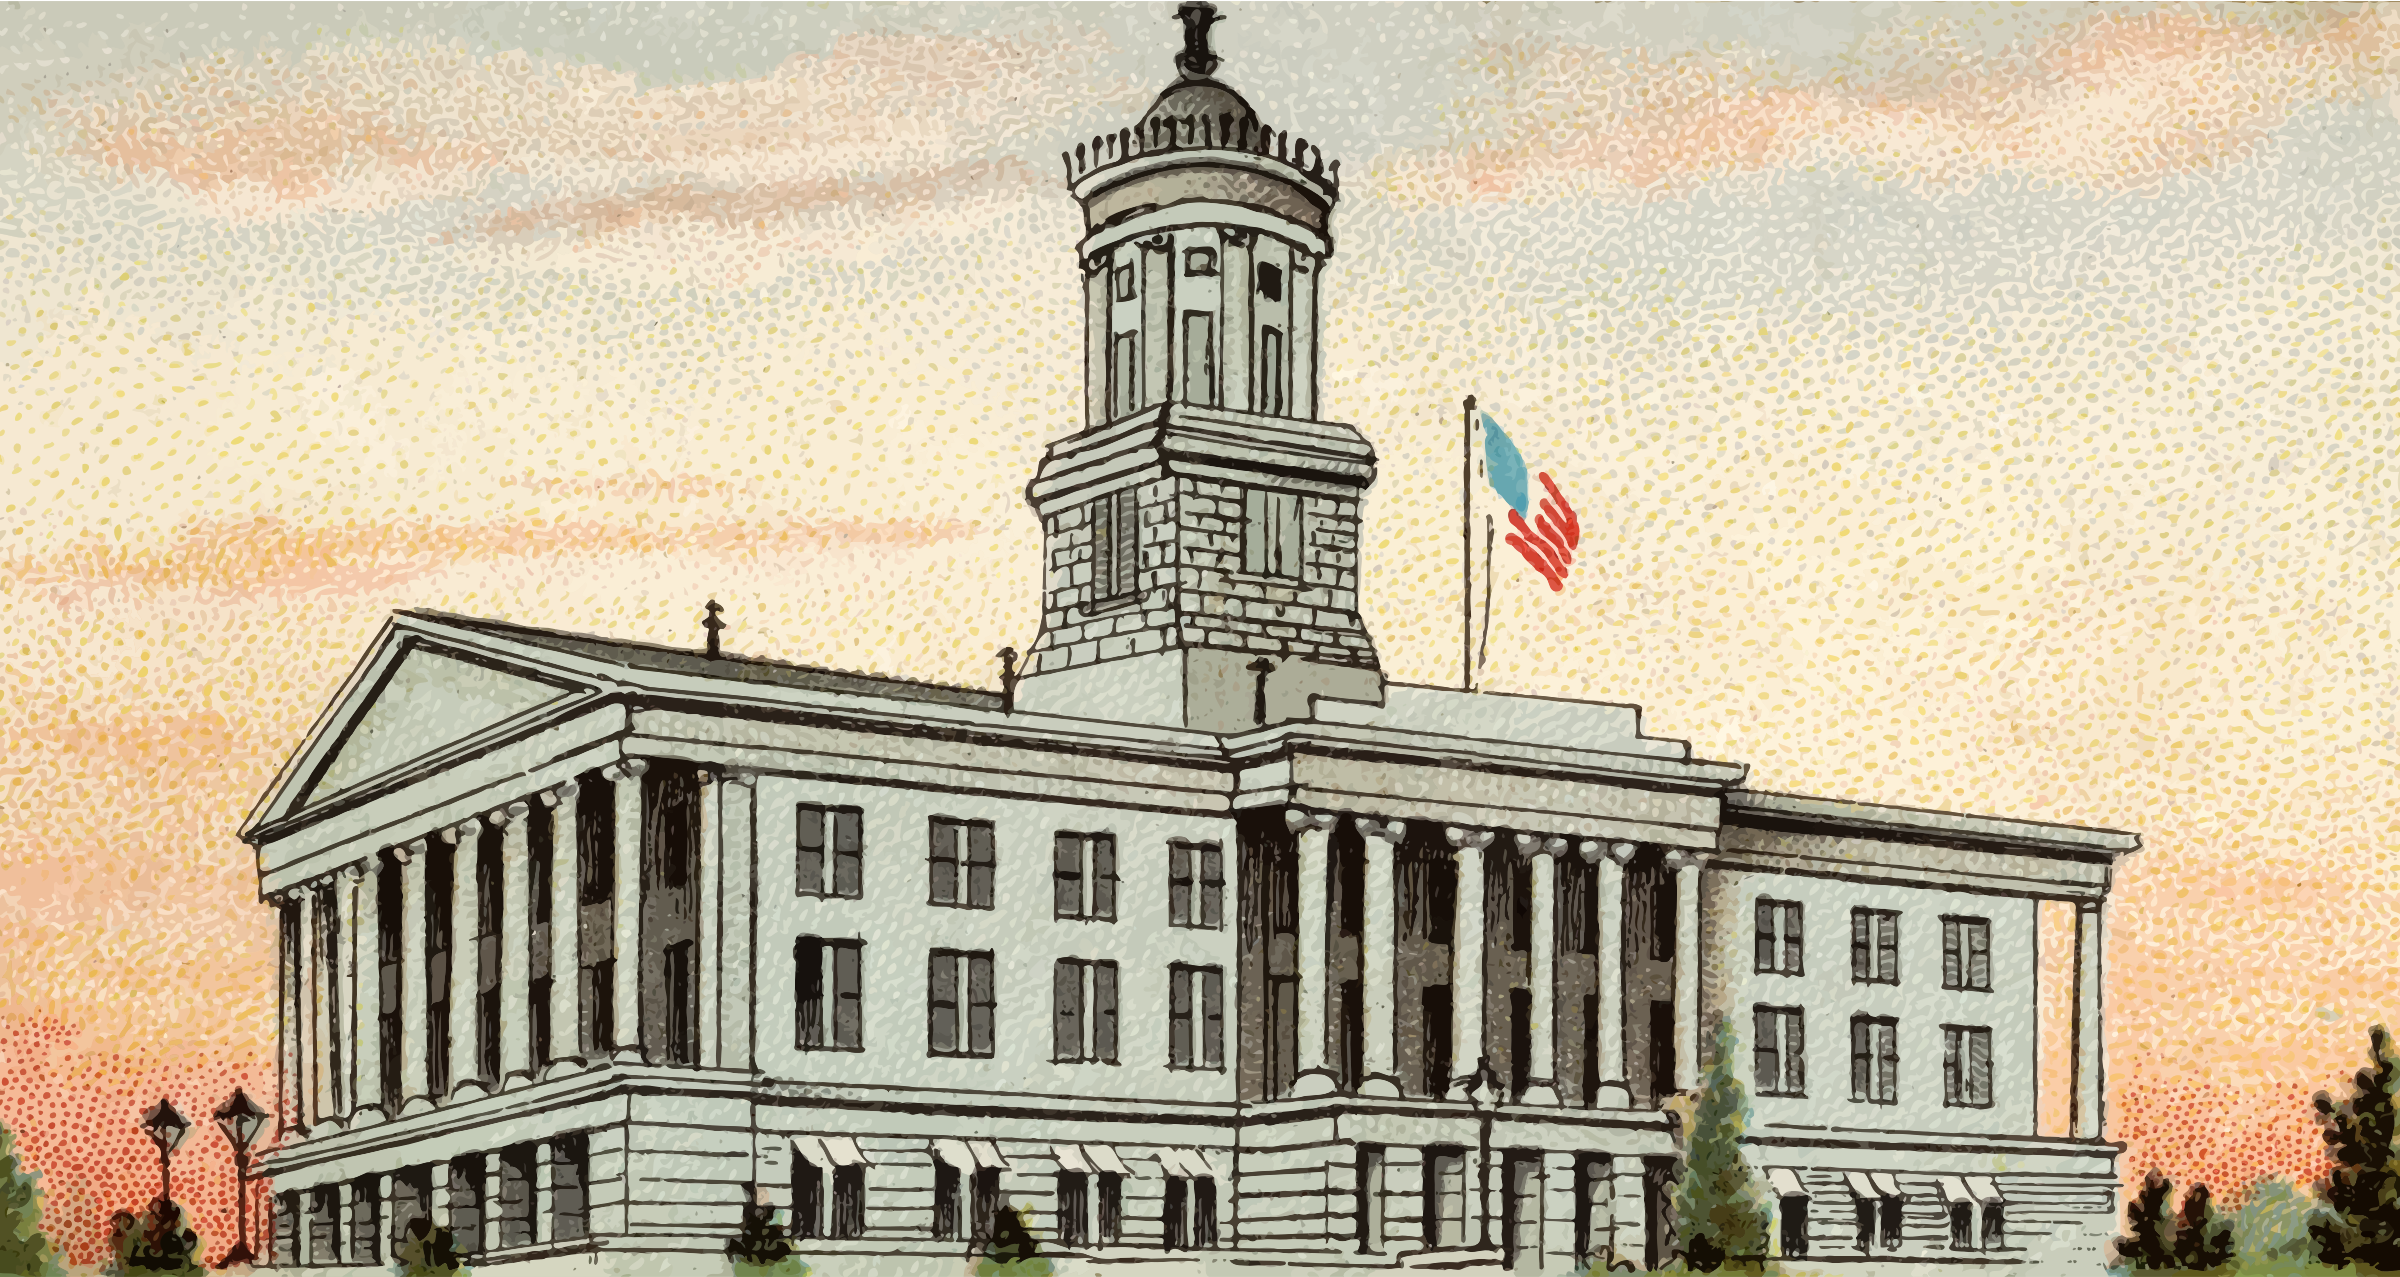 Cigarette Card - Capitol Building of Tennessee by Firkin